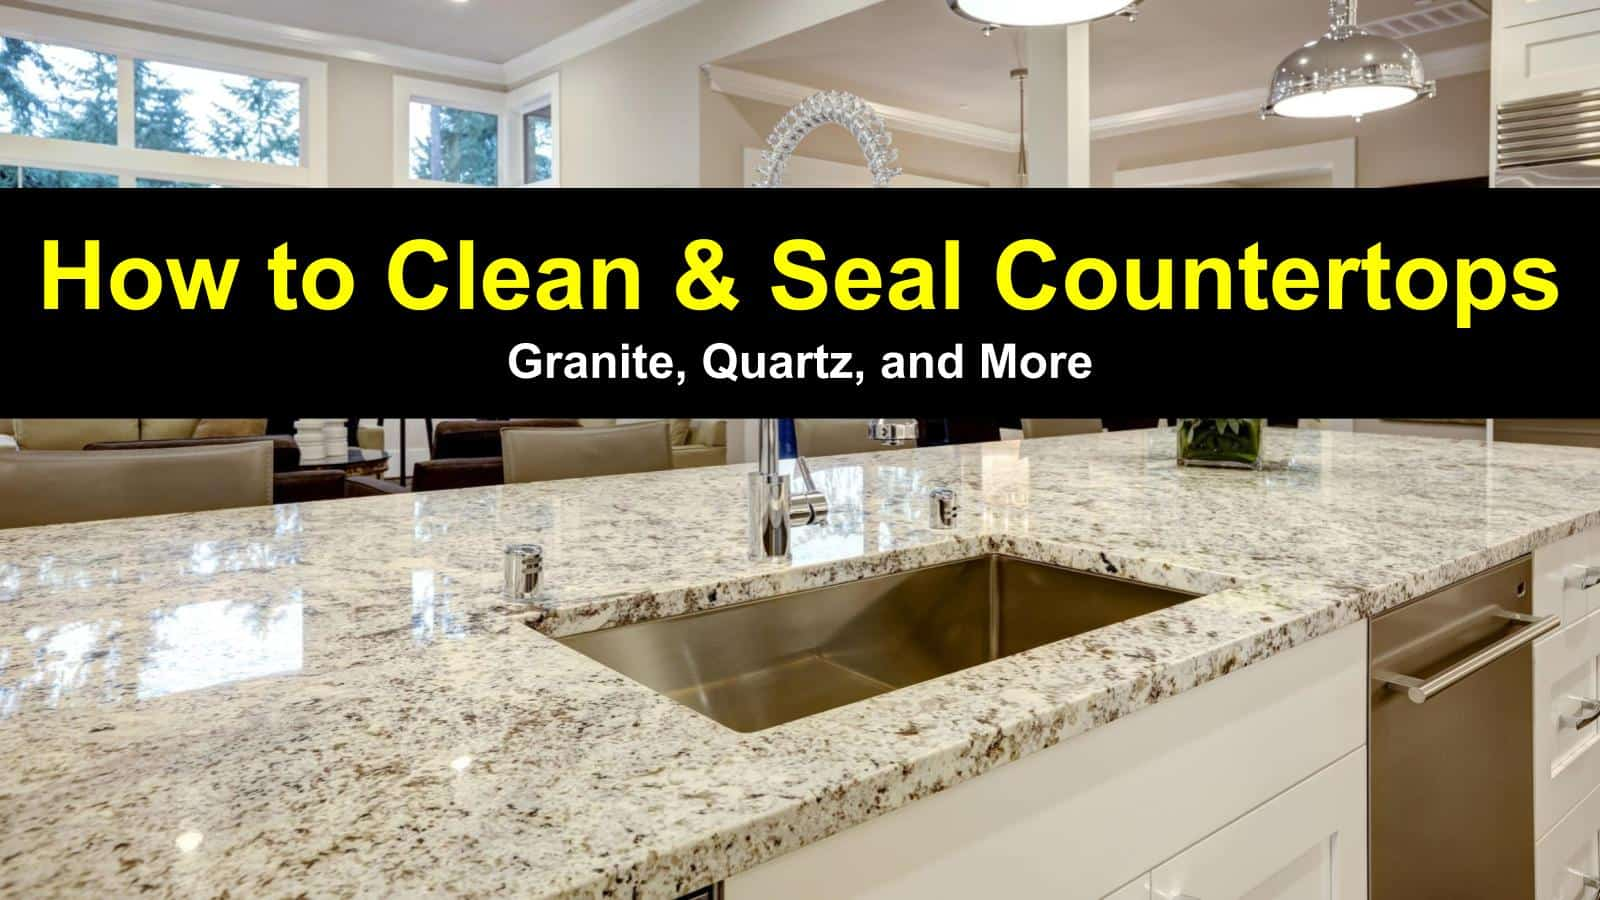 Cleaning Formica Countertops How To Clean And Seal Countertops Granite Quartz And More